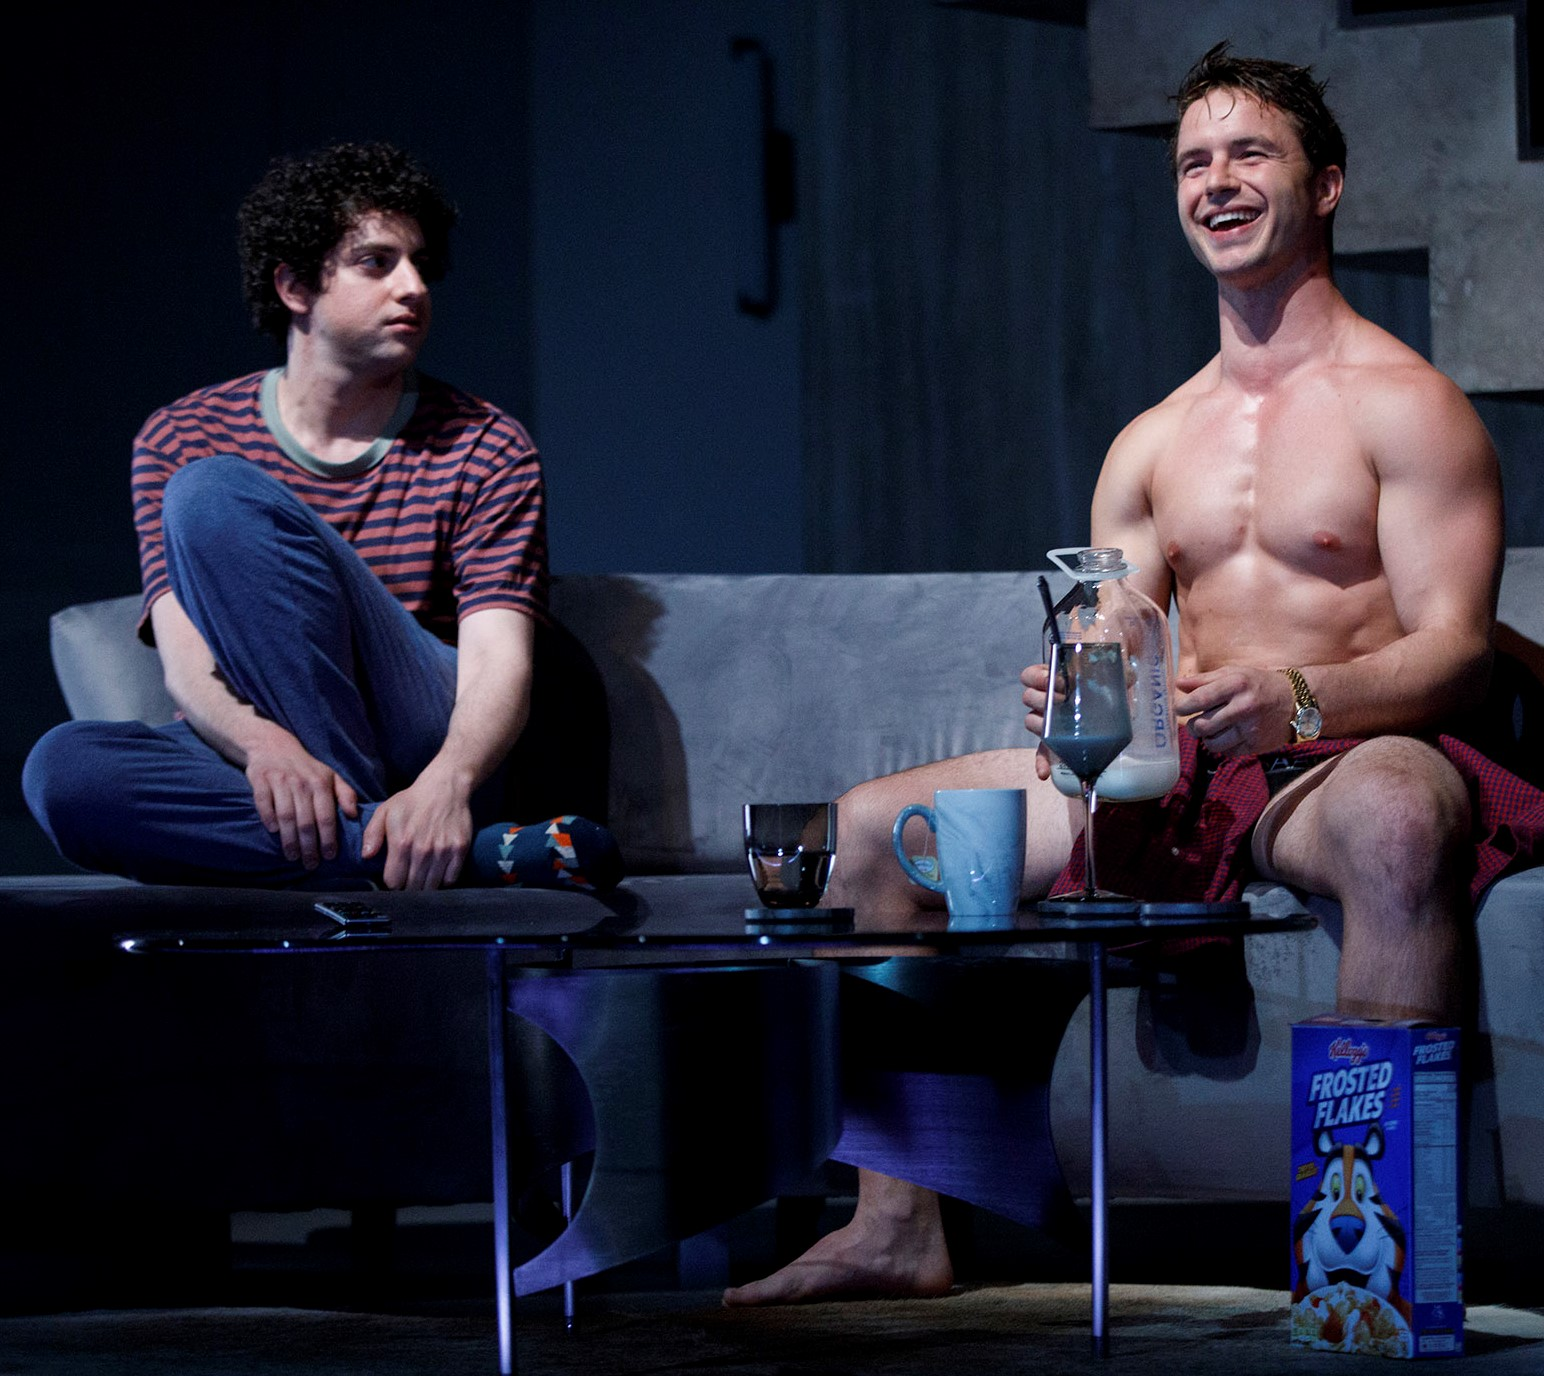 Gelb as the 20-year-old Benjamin with Brittain as Trey, who is also 20 and dating Benjamin's grandfather. Photographs by Joan Marcus.